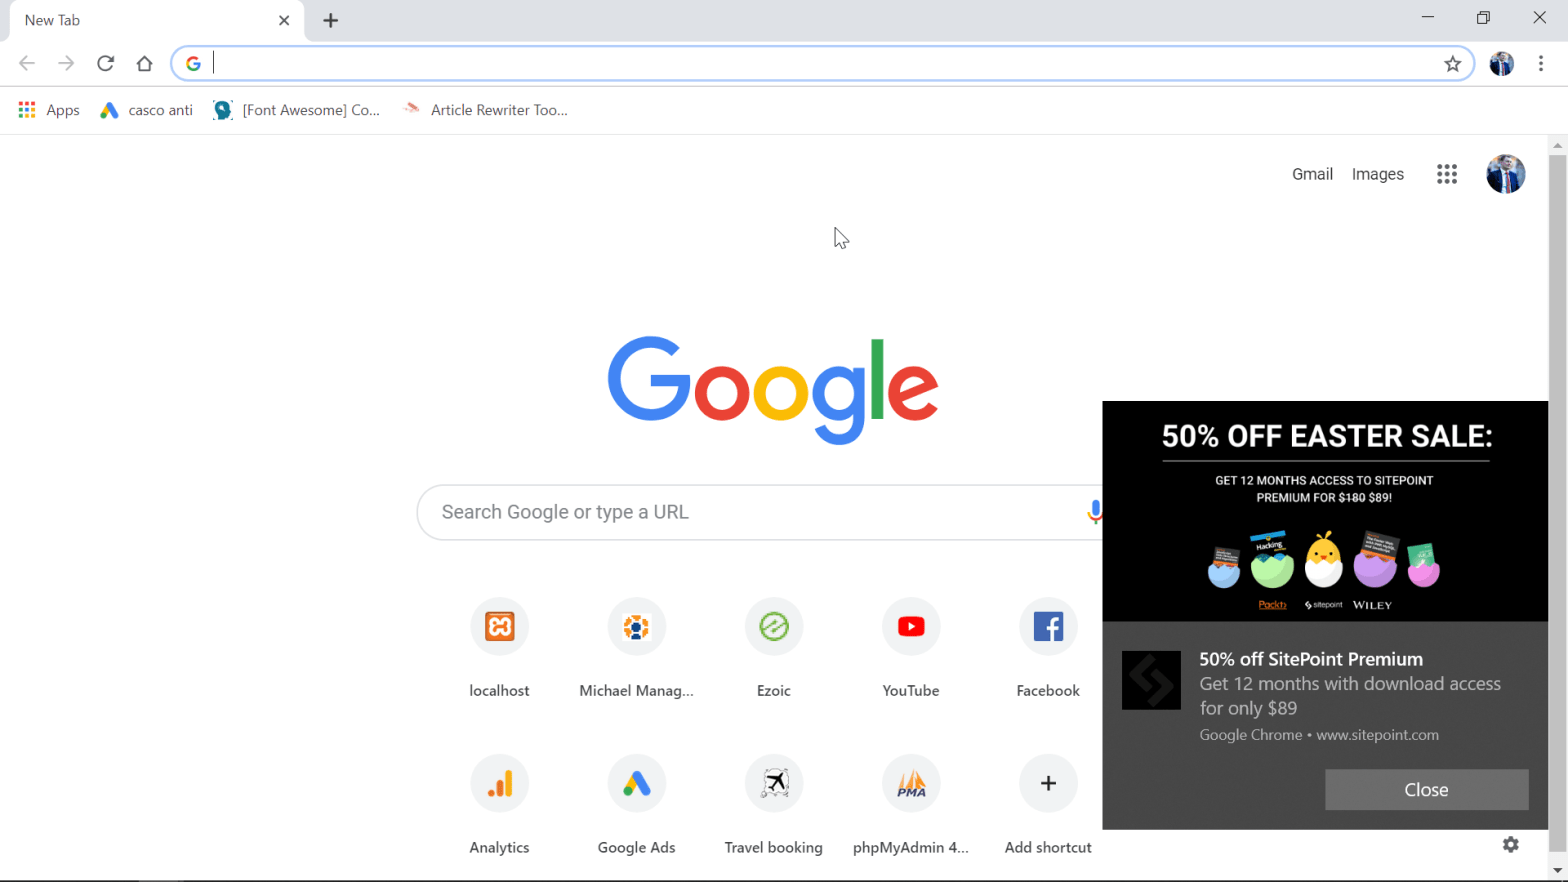 How to turn off Chrome notifications on Windows10?